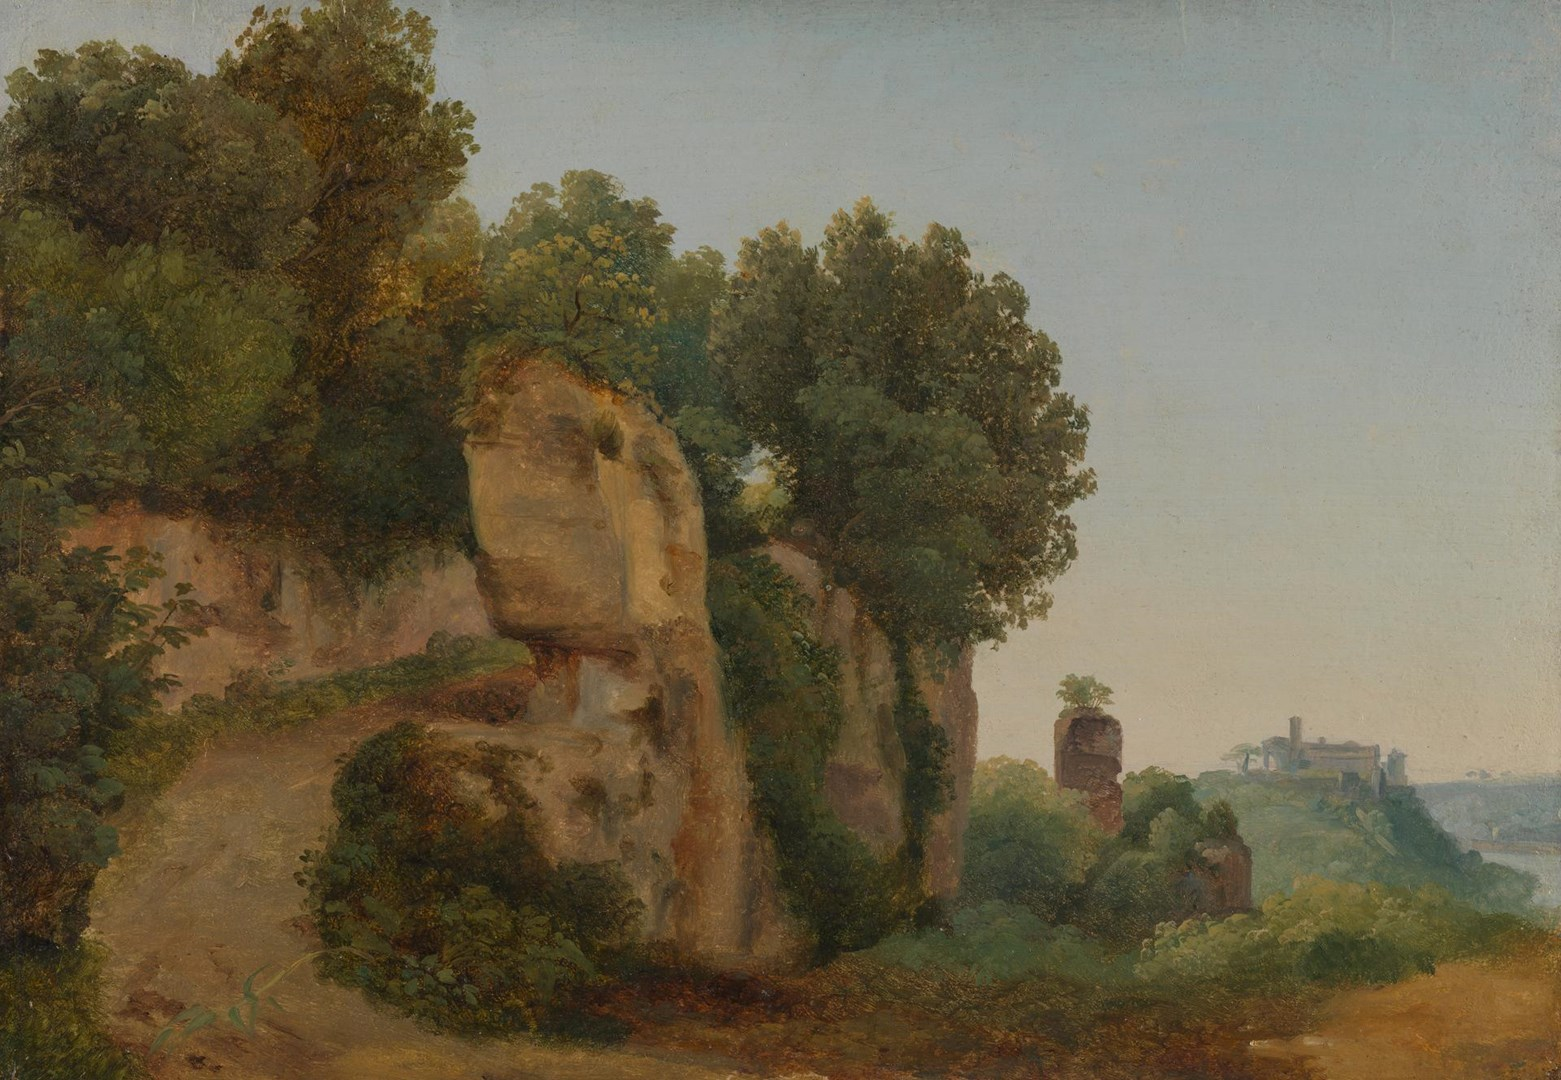 View of the Aventine Hill from the Palatine by Anton Sminck van Pitloo